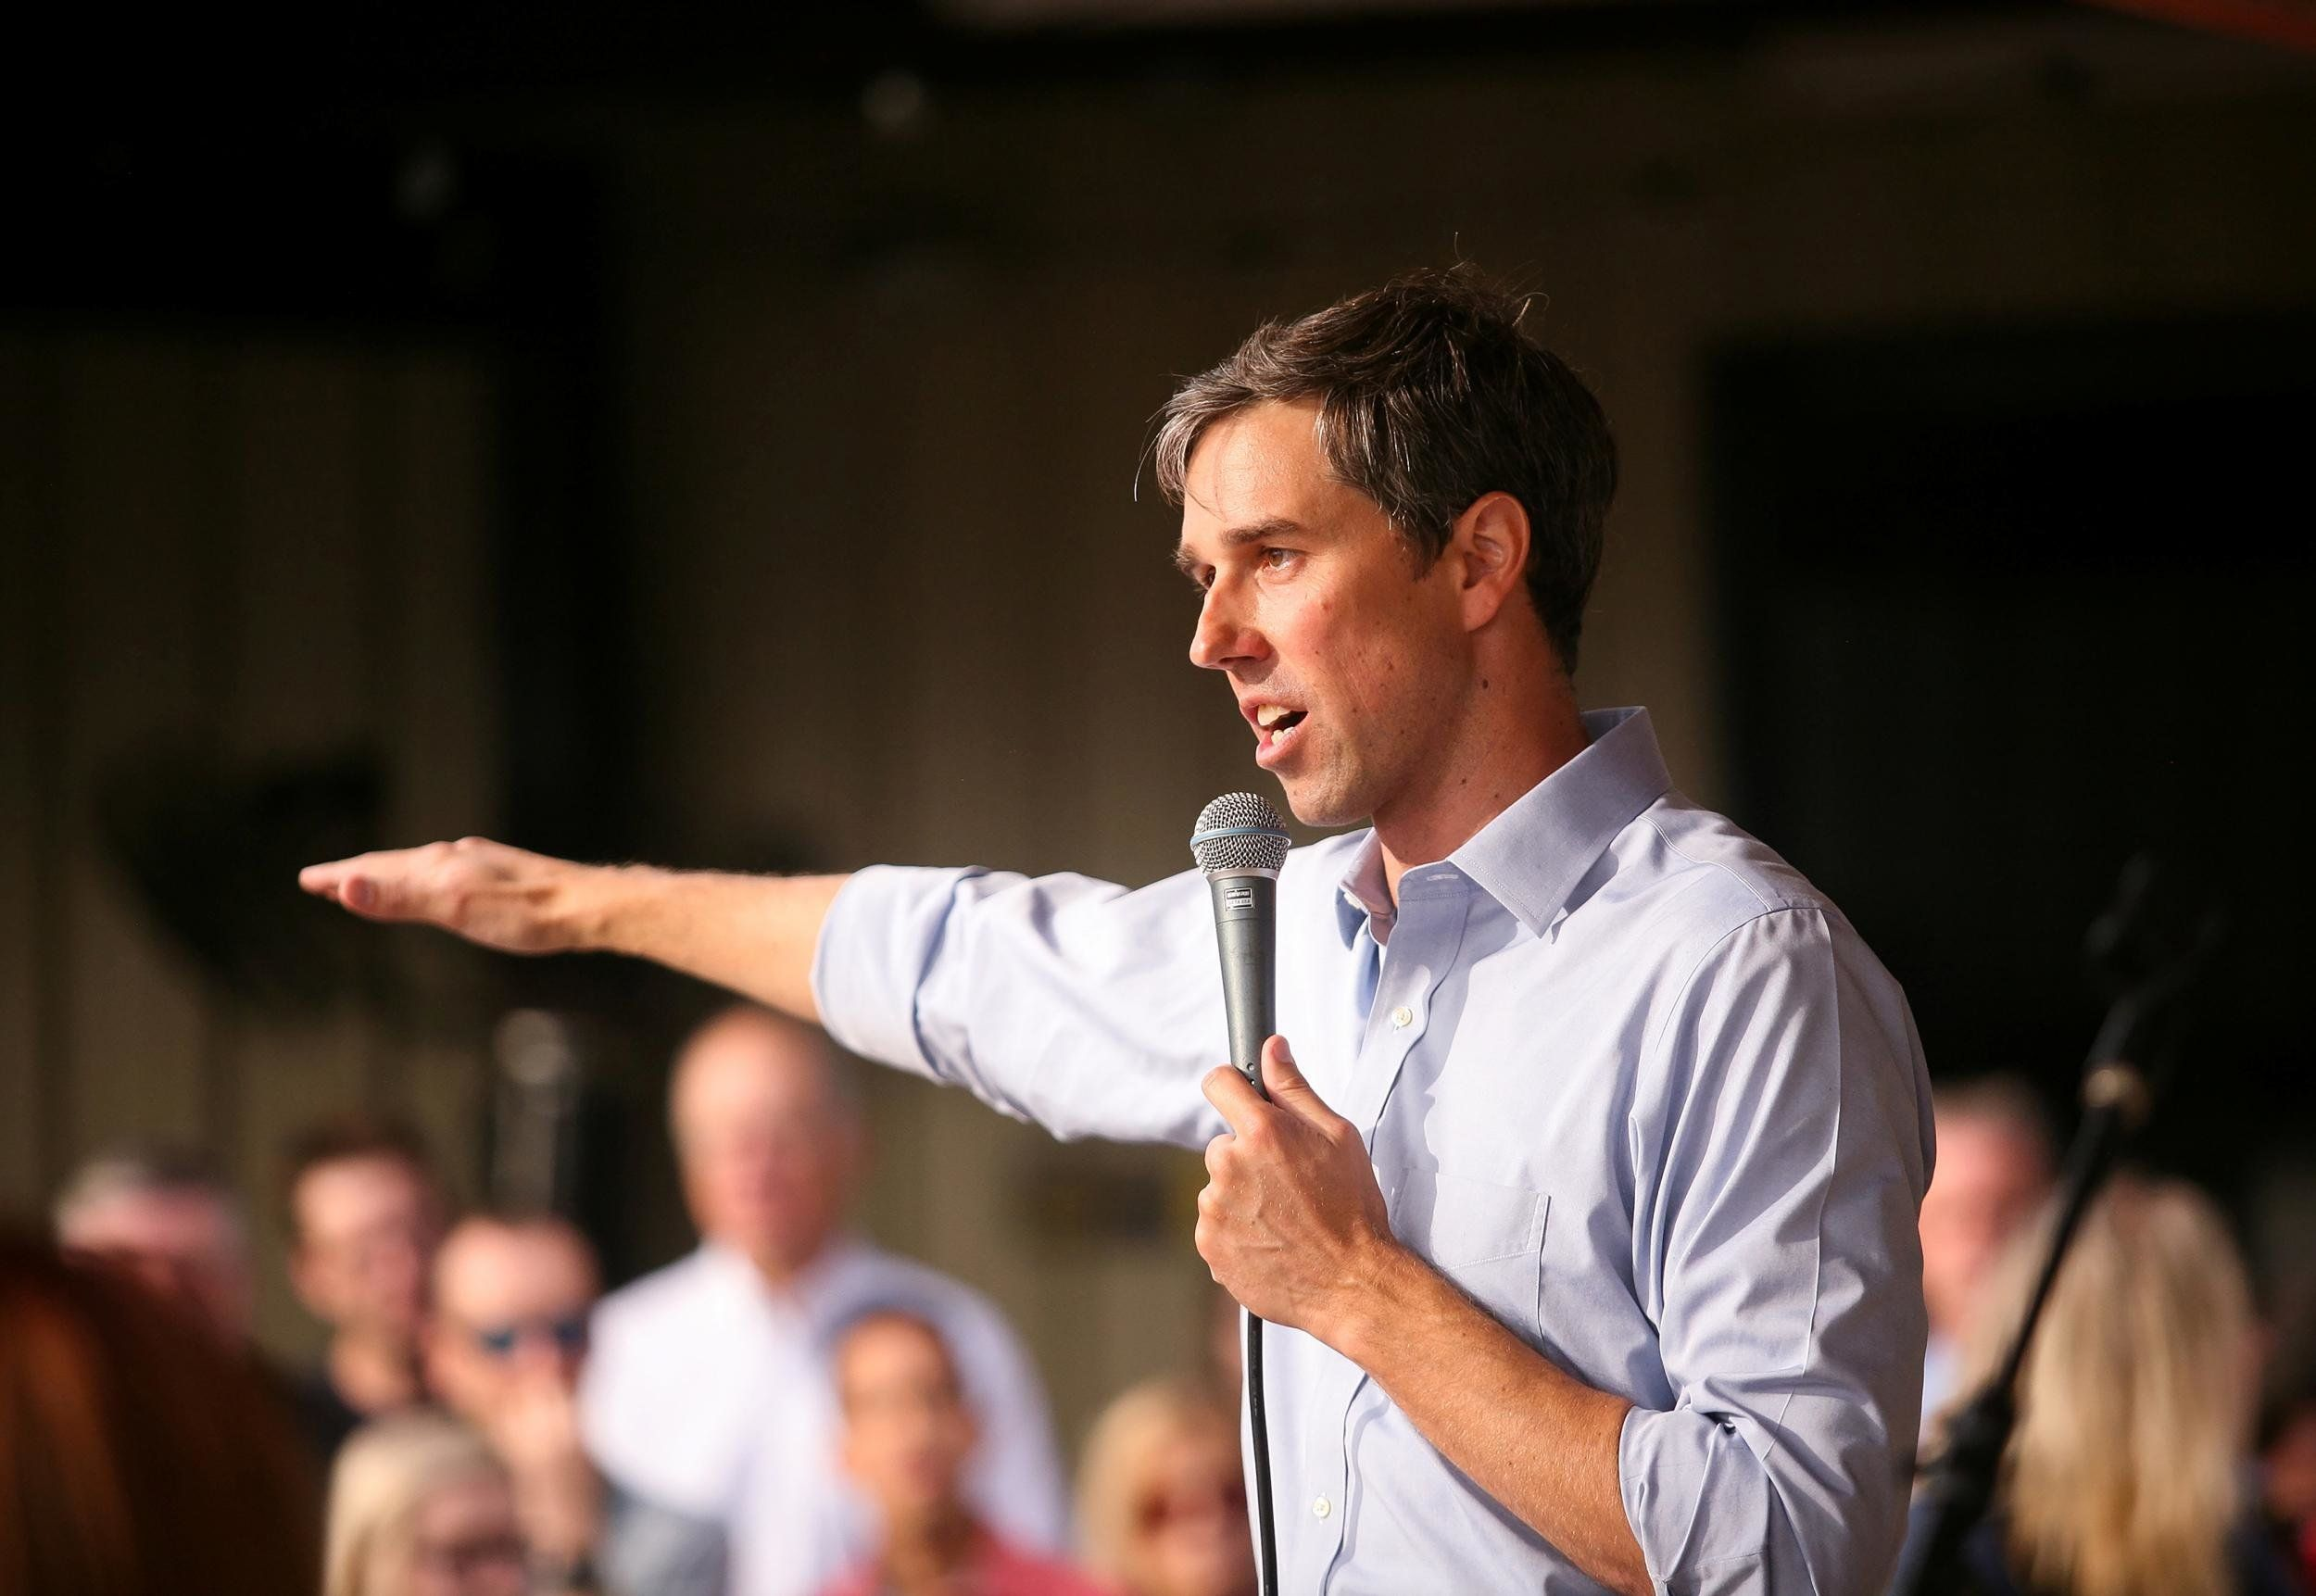 Midterm elections: Beto O'Rourke says he would definitely vote to impeach Donald Trump at Texas town hall